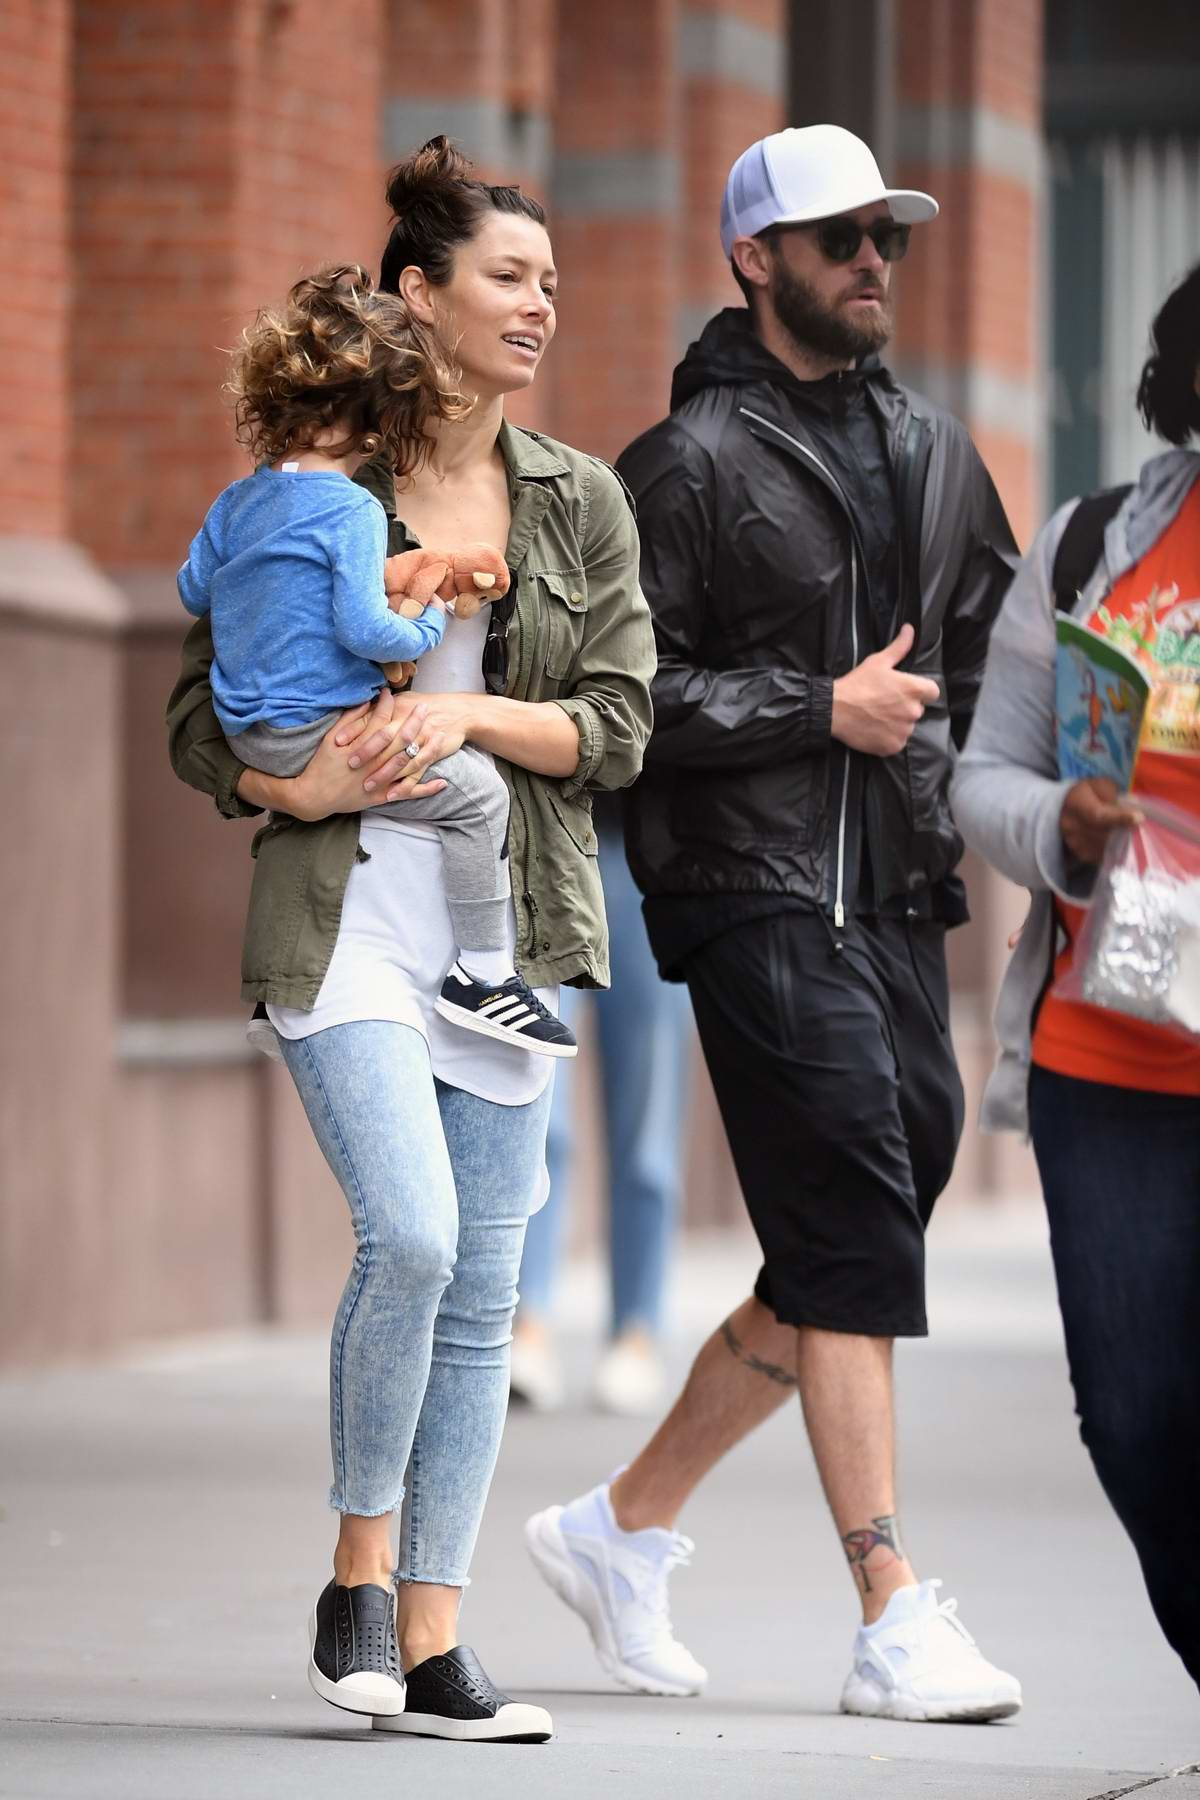 Jessica Biel and Justin Timberlake out for the day in New York